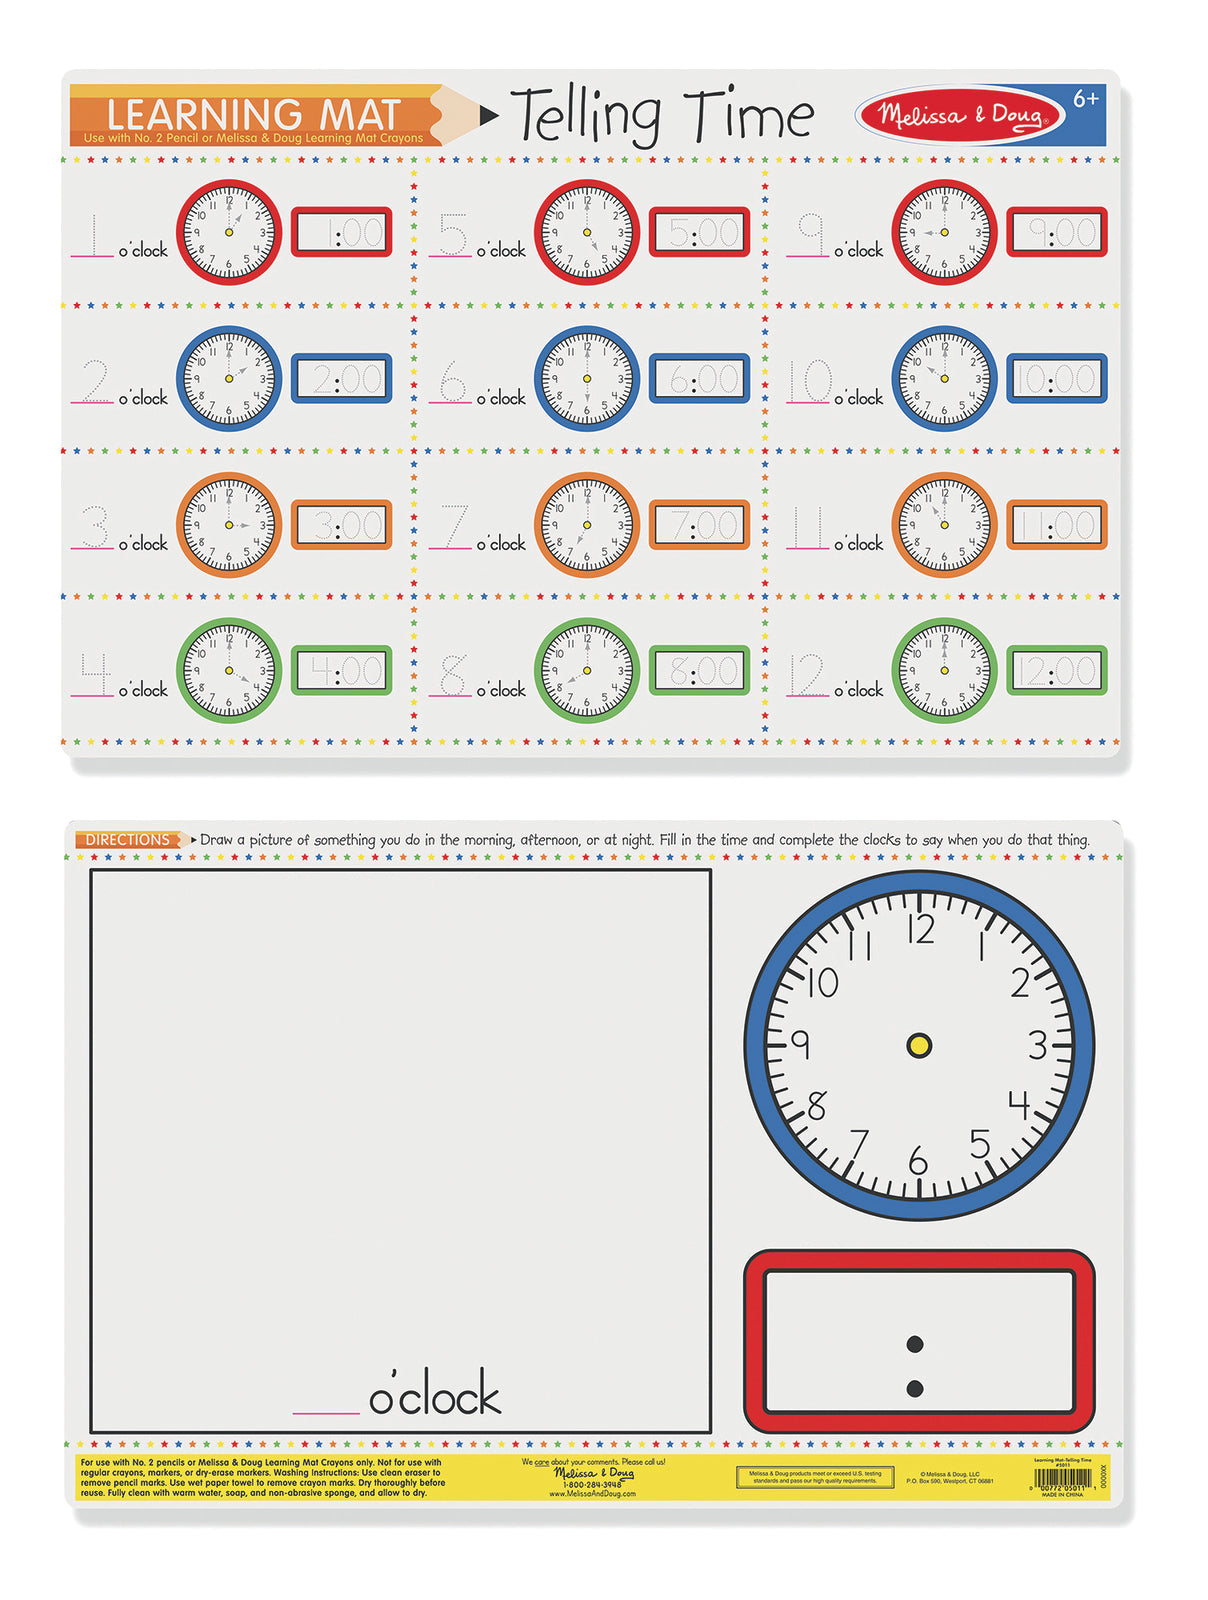 M&D Learning Mat Telling Time